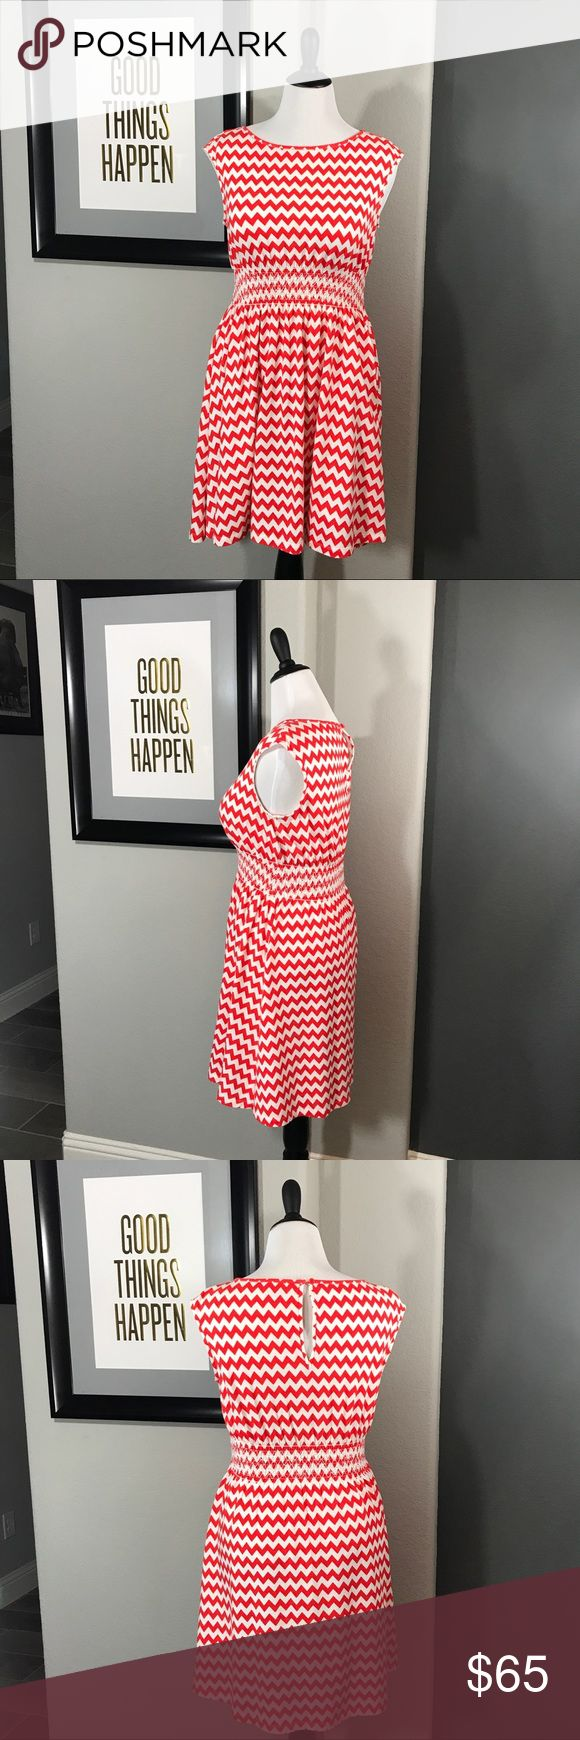 🔥SALE🔥⭐️KATE SPADE⭐️ orange chevron dress Medium ⭐️KATE SPADE⭐️ orange chevron dress Medium.  Super cute fit and flare dress. Smocked waistline defines the figure while being really comfy!  Pictures read a bit red...but it is definitely orange ☺️. Worn twice. Still bright. No piling. There are two tiny holes on the skirt near the left hip (see last pic). Difficult to see without looking for them. kate spade Dresses